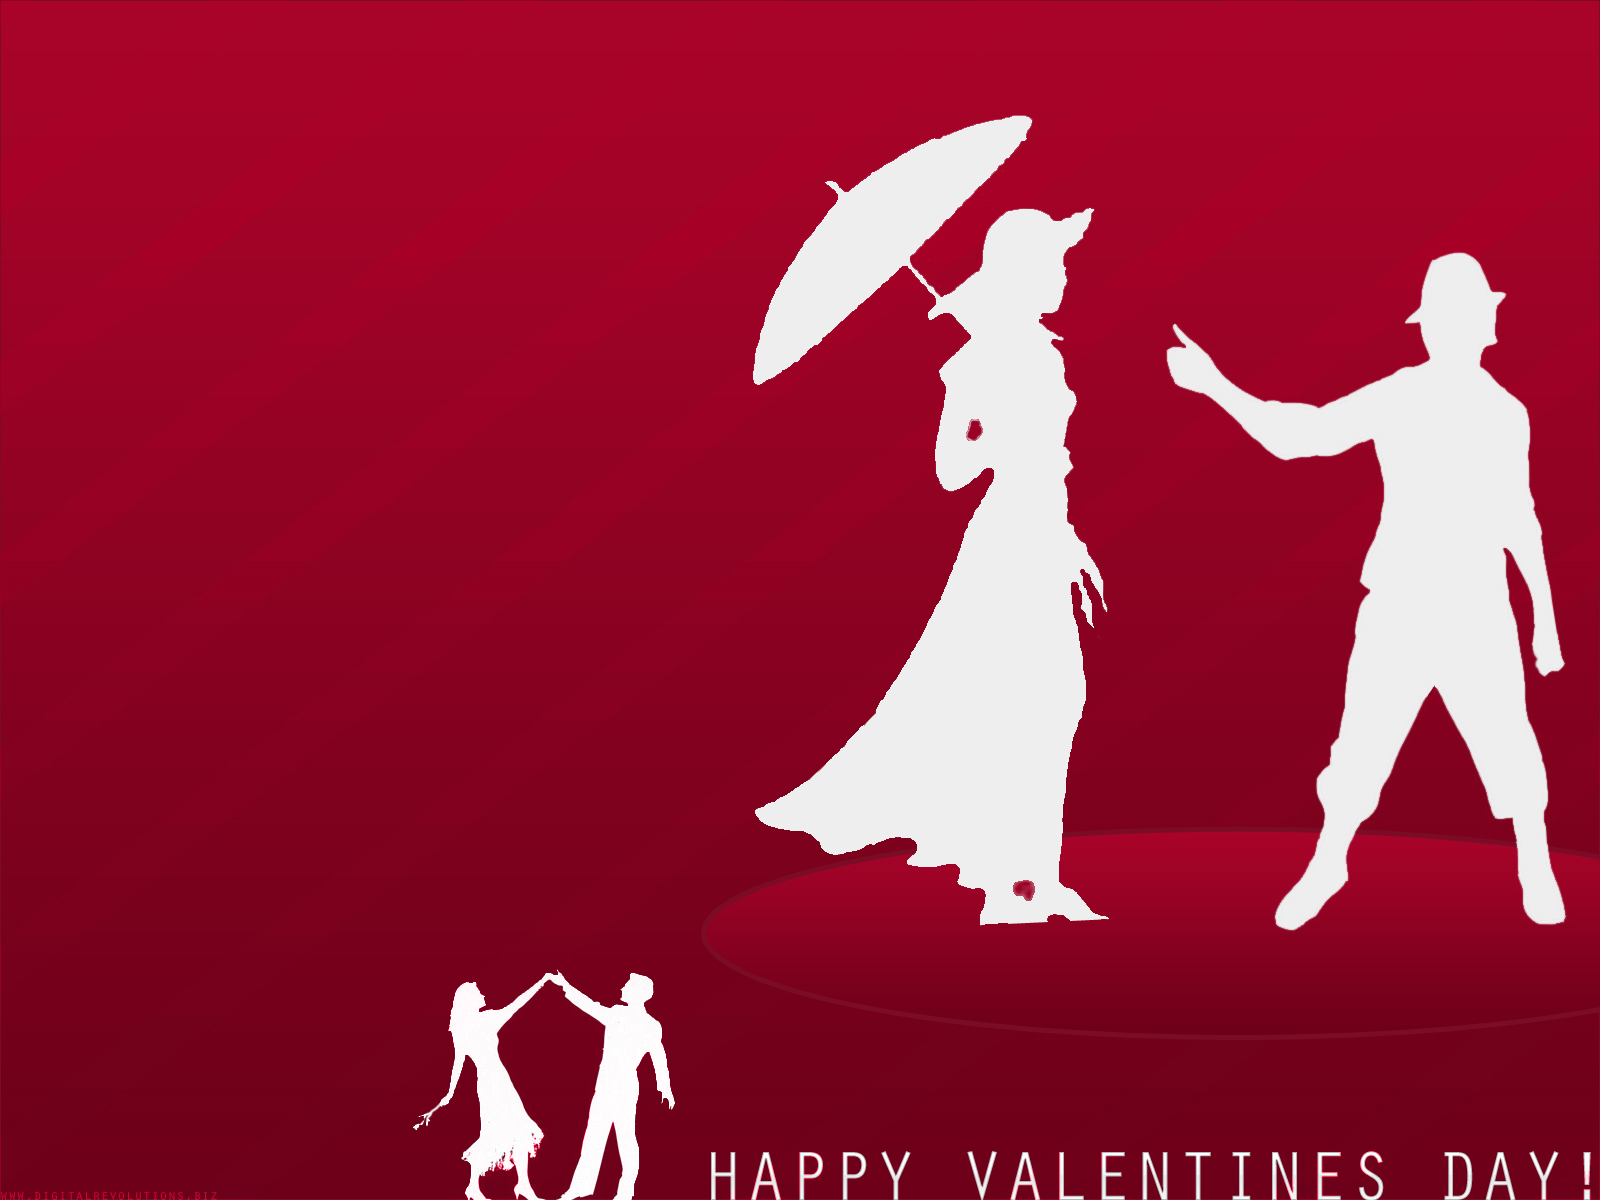 valentines day wallpapers 2015 2016 wallpaper hd